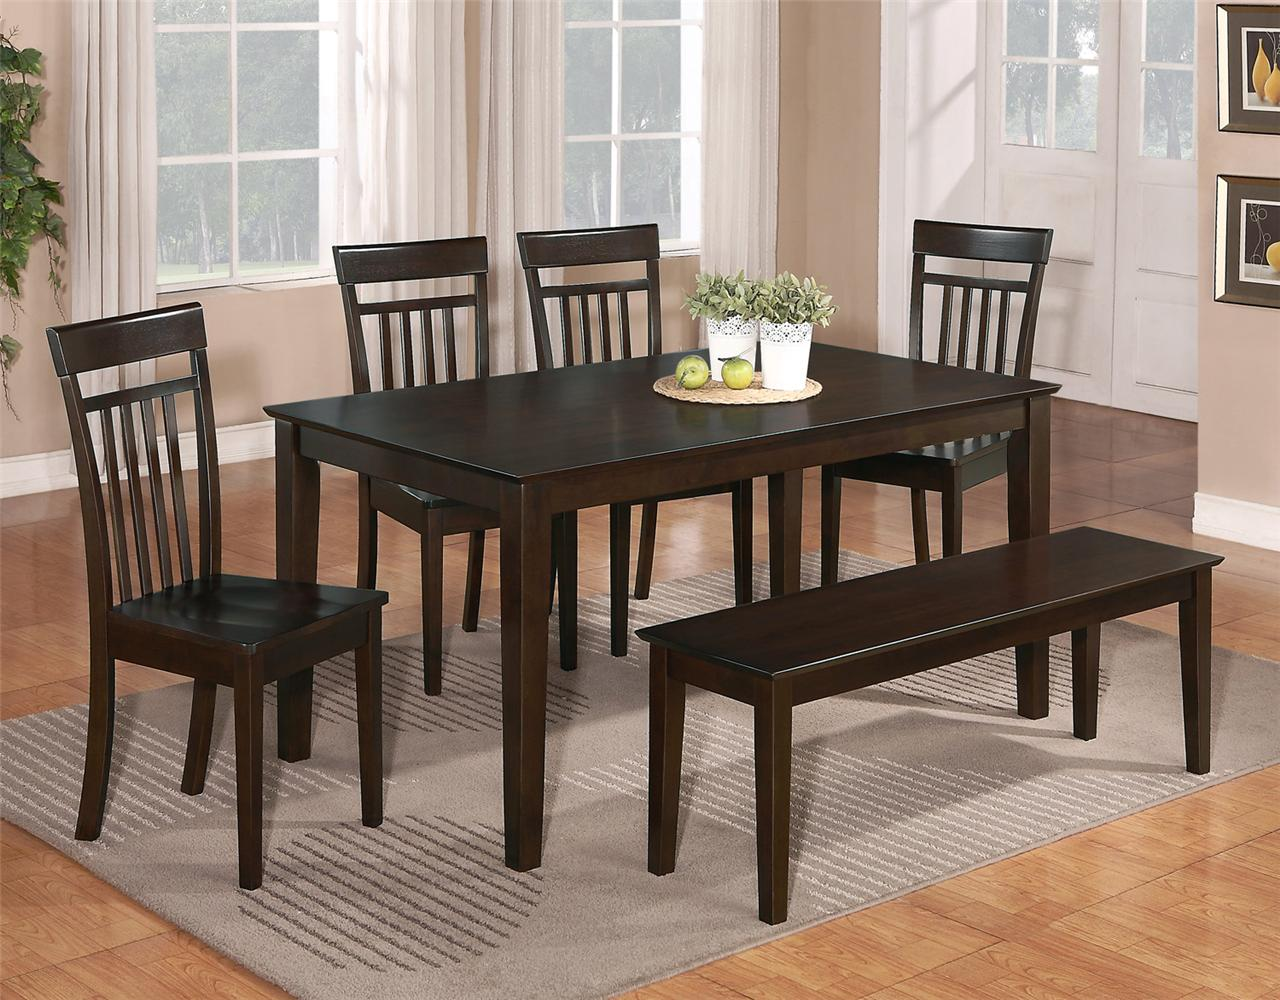 6 pc dinette kitchen dining room set table w 4 wood chair for Kitchen dinette sets